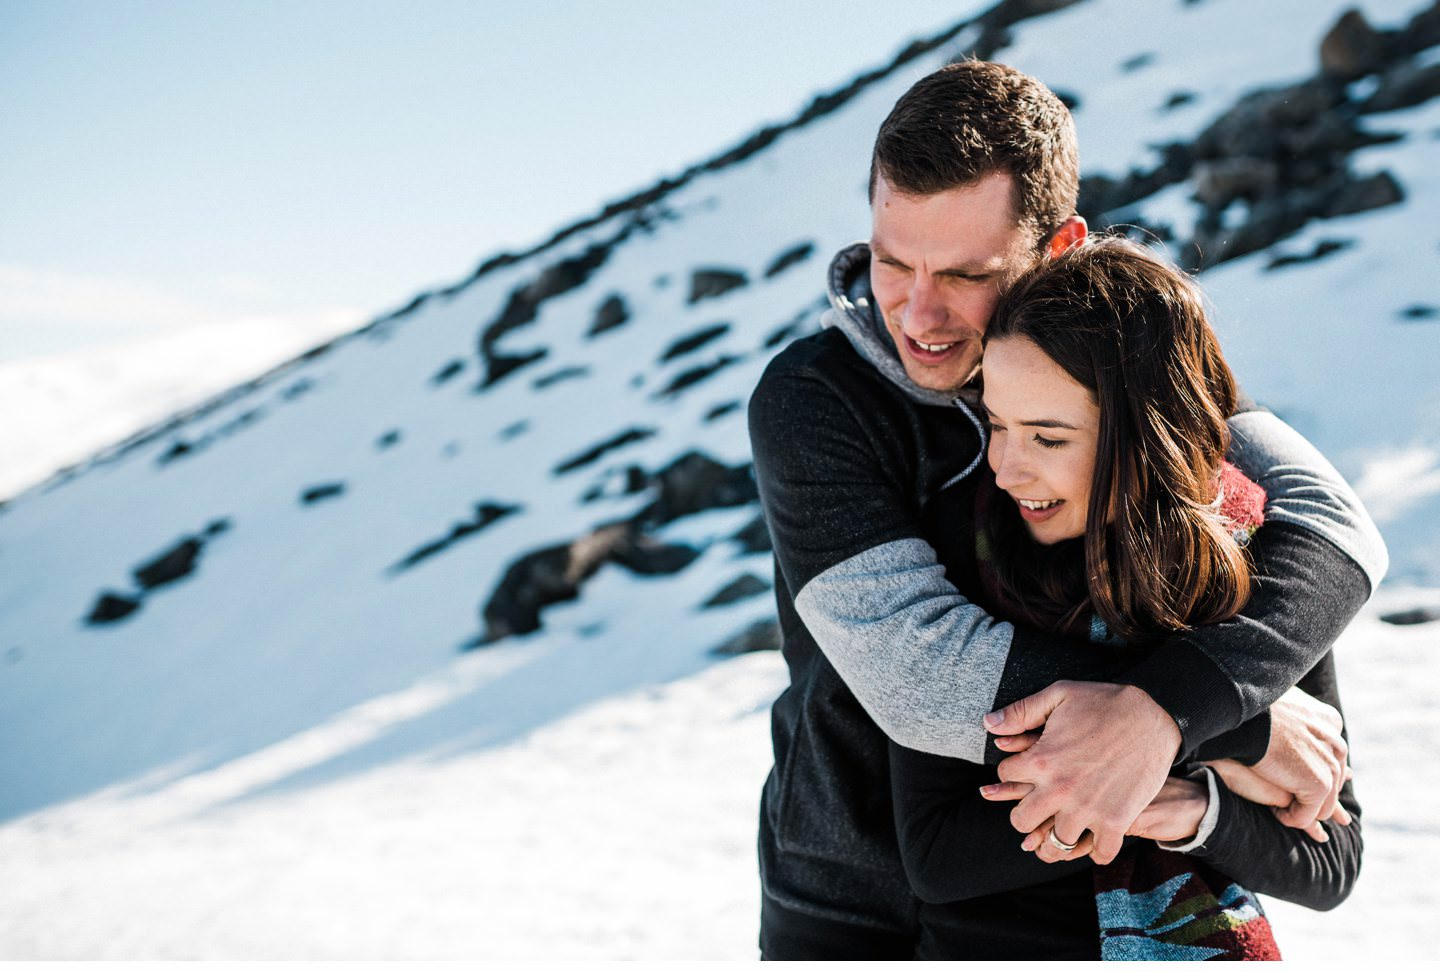 016-Cardrona-Couples-Session-Photography.jpg